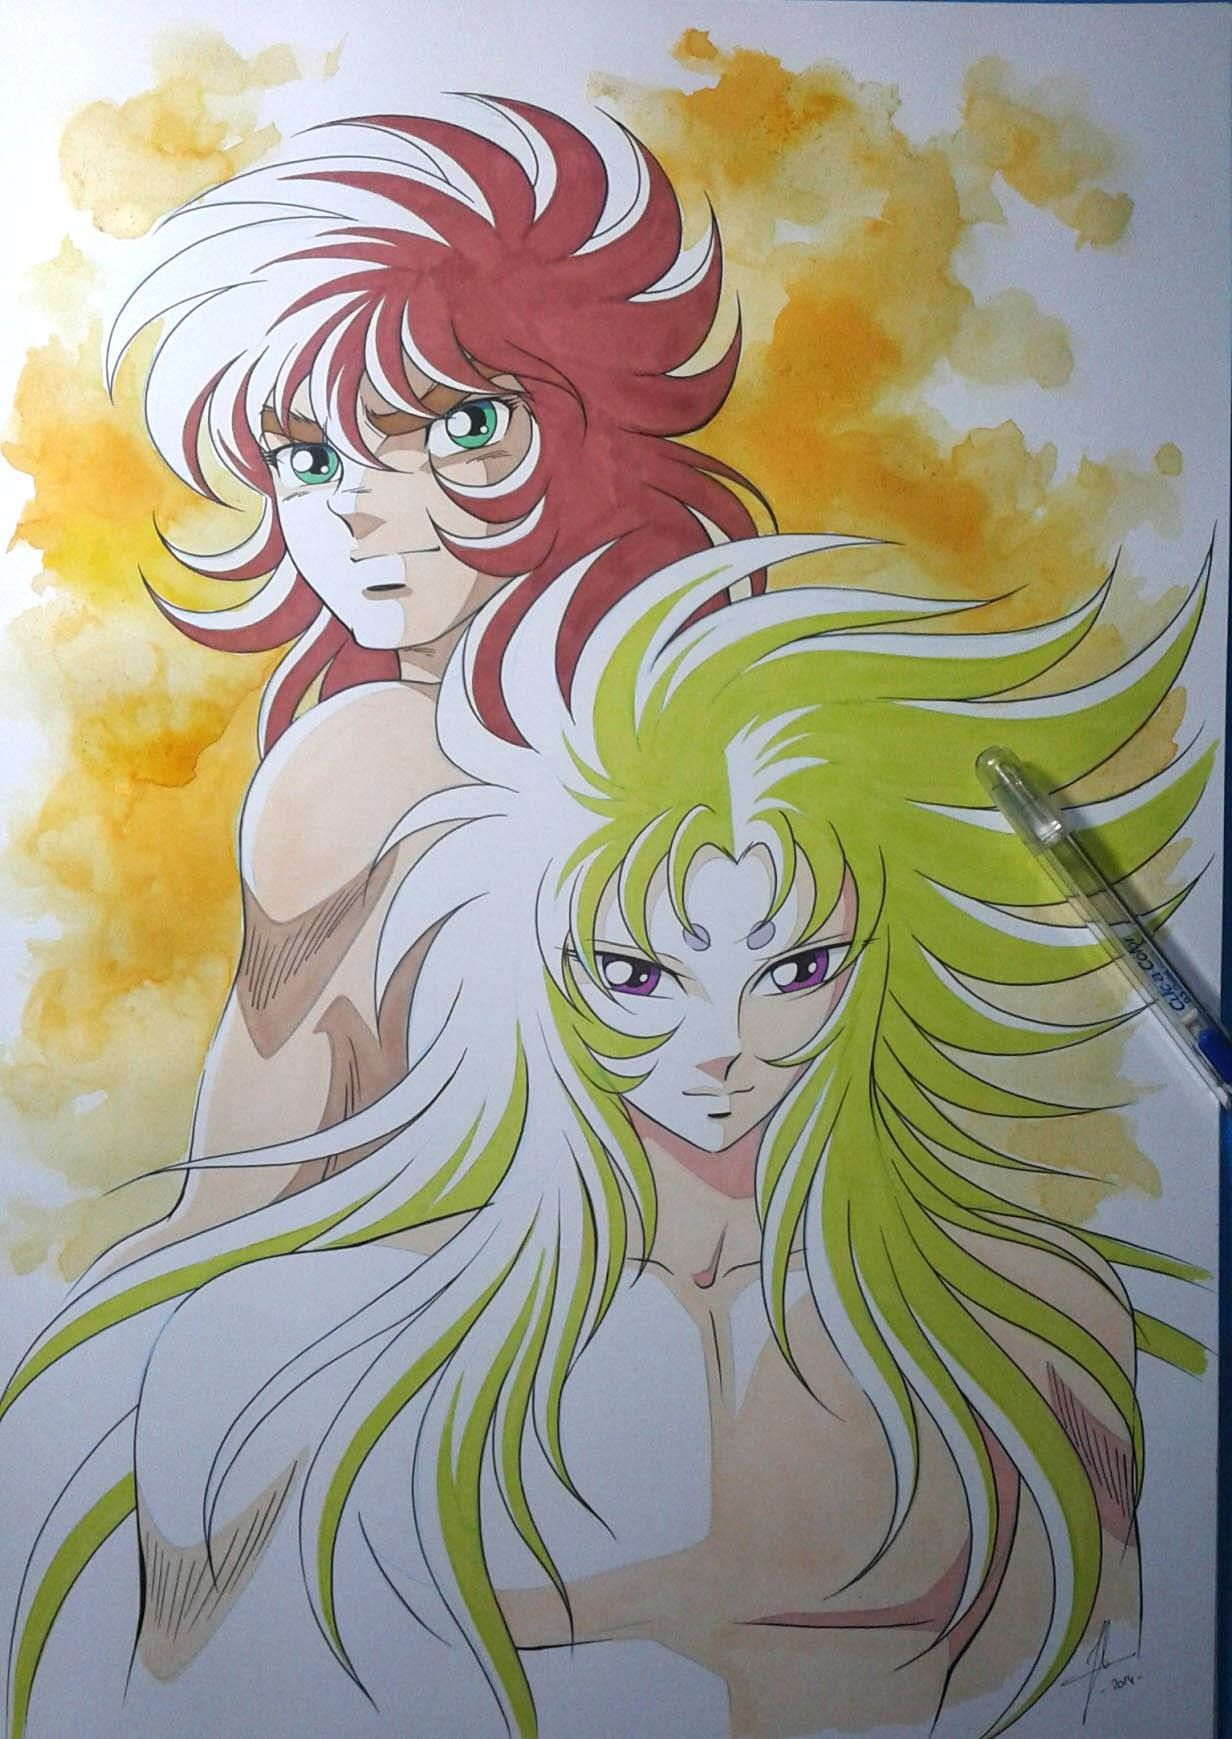 Saint Seiya Libra Saint Seiya Libra Dhoko And Aries Shion By Jerome Alquie